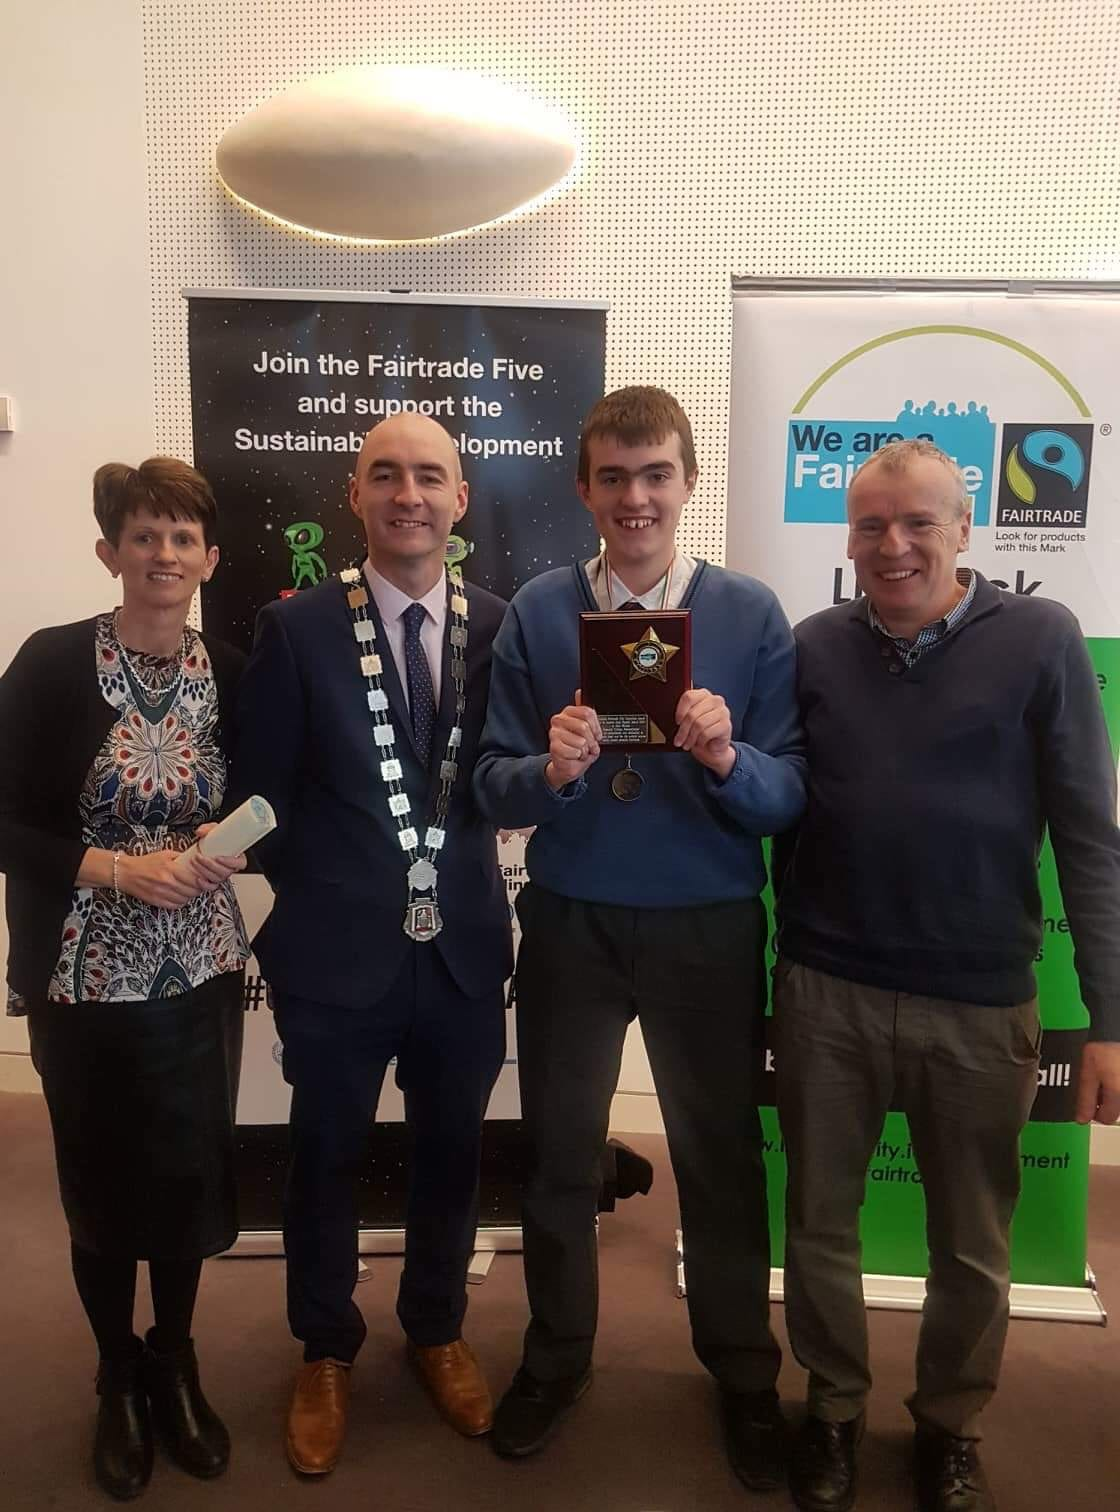 Alan Wallace pictured with his parents and Daniel Butler - Lord Mayor of the Metropolitan District of Limerick after receiving the Sr Rosetta Gray Award from Limerick Fairtrade